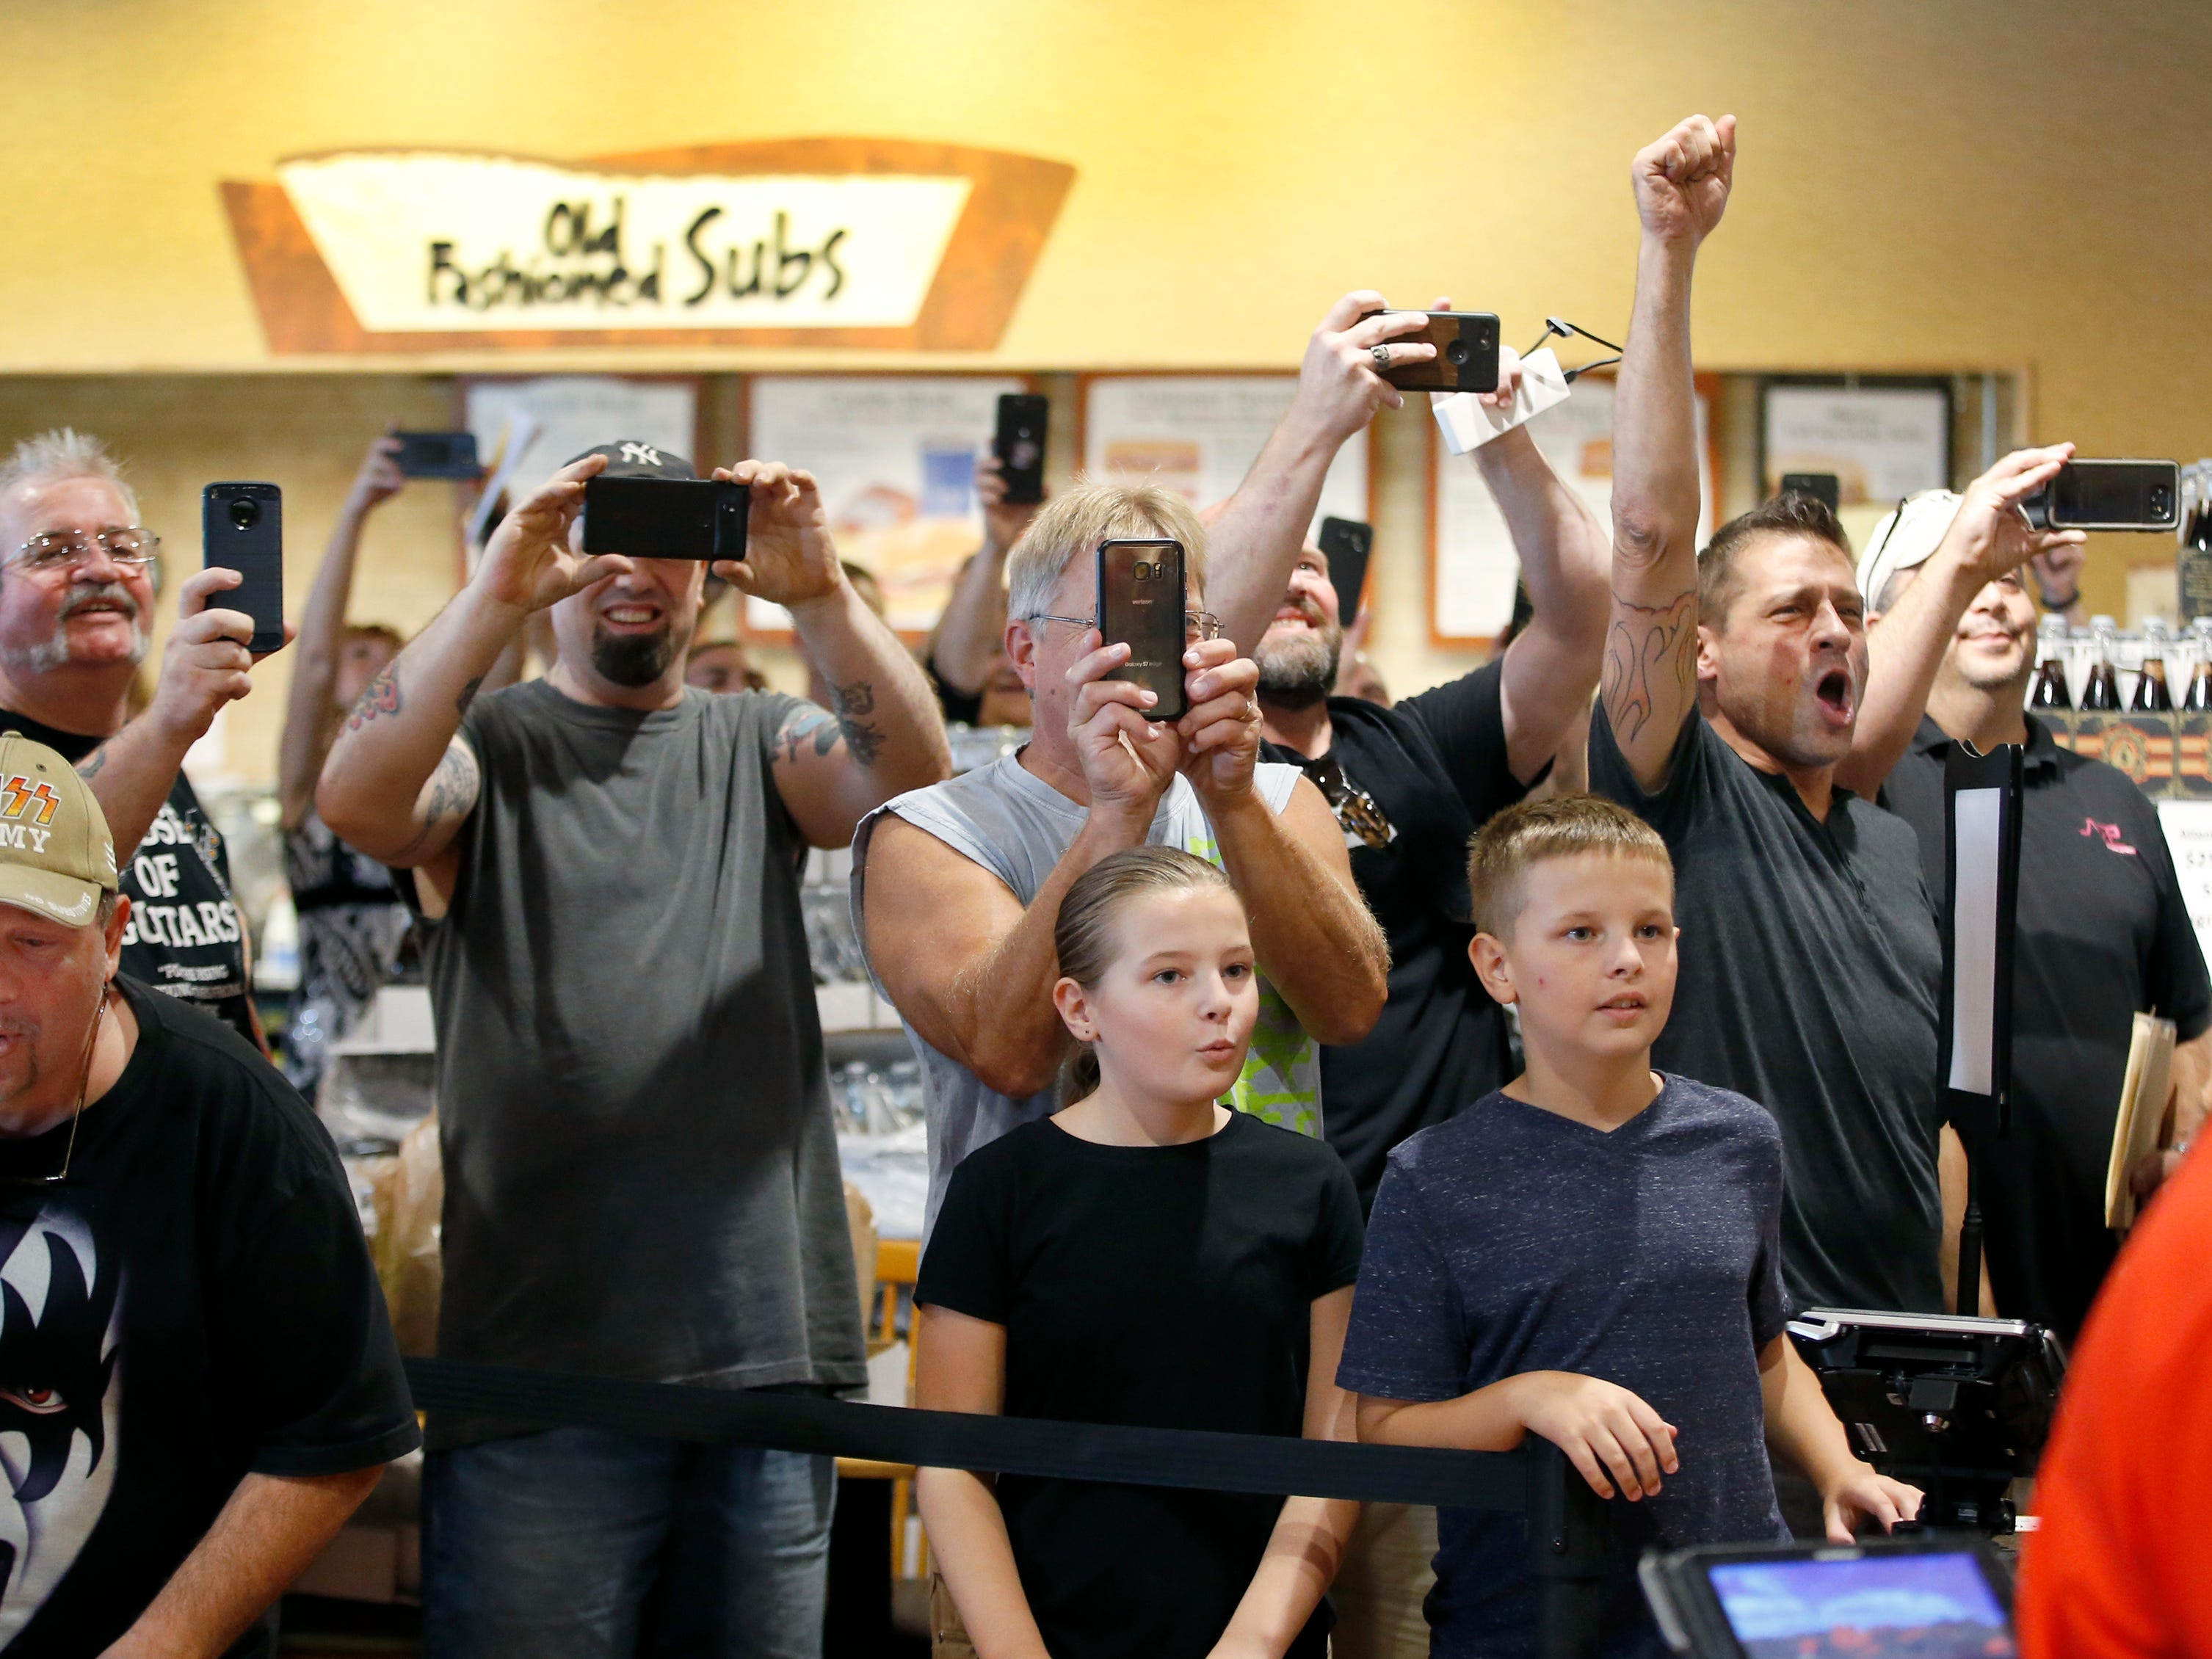 Fans take out the phones as soon as KISS co-founder Gene Simmons walks into the Chili-Paul Wegmans store to promote his MoneyBag Sodas.